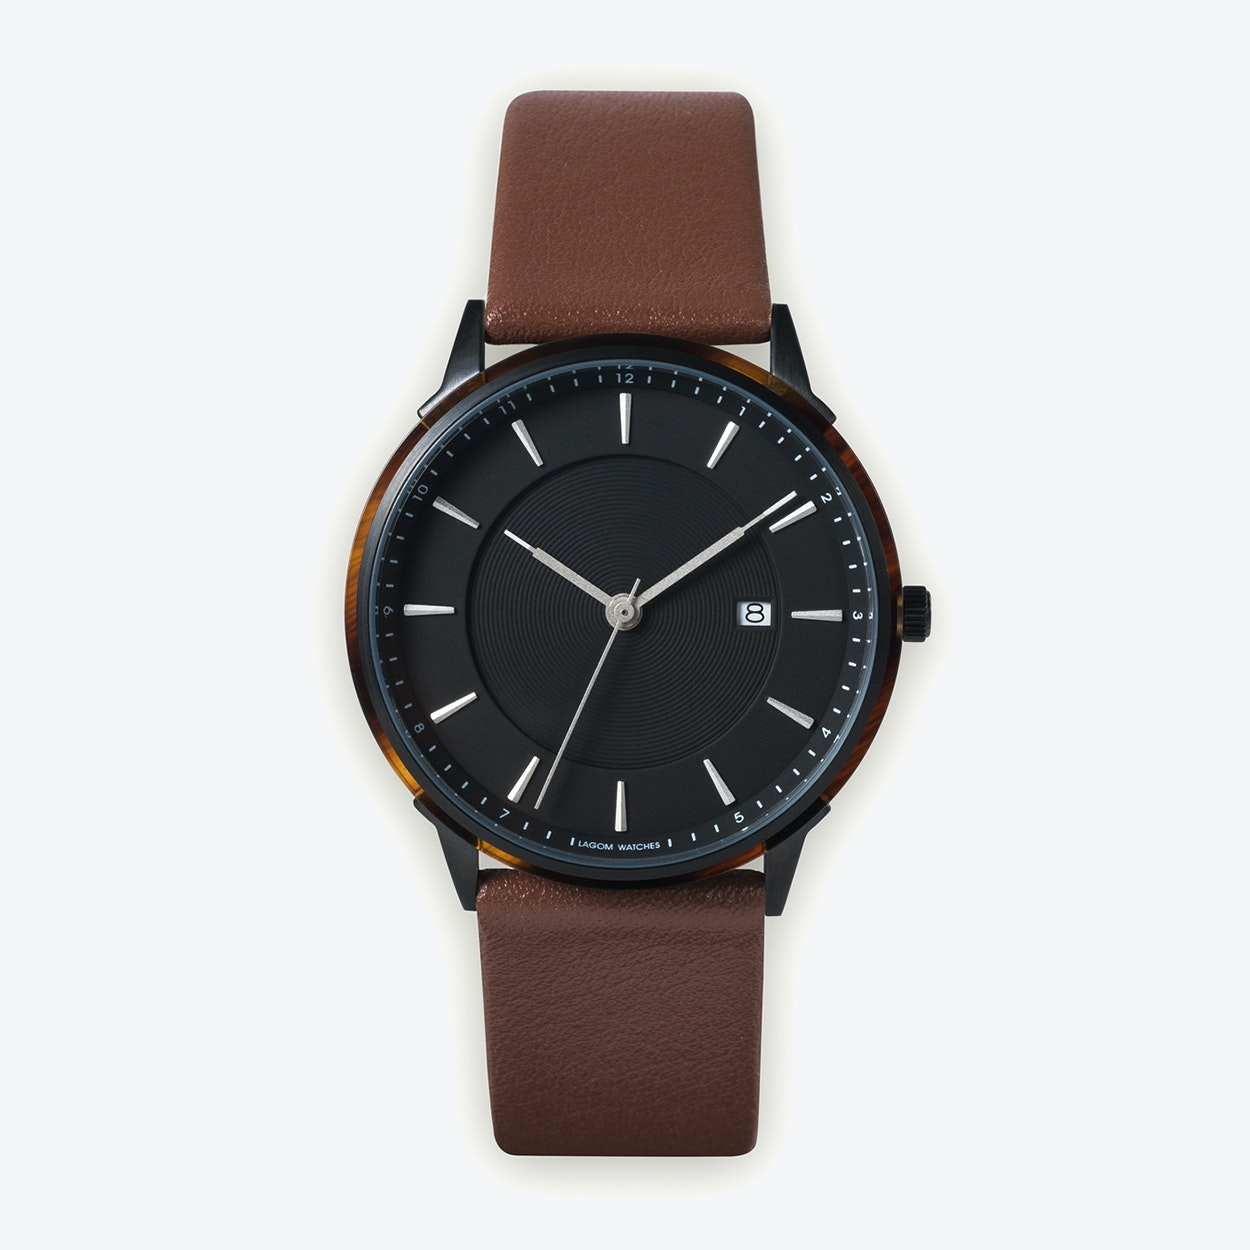 Borja Black Watch In Black Face And Brown Leather Strap